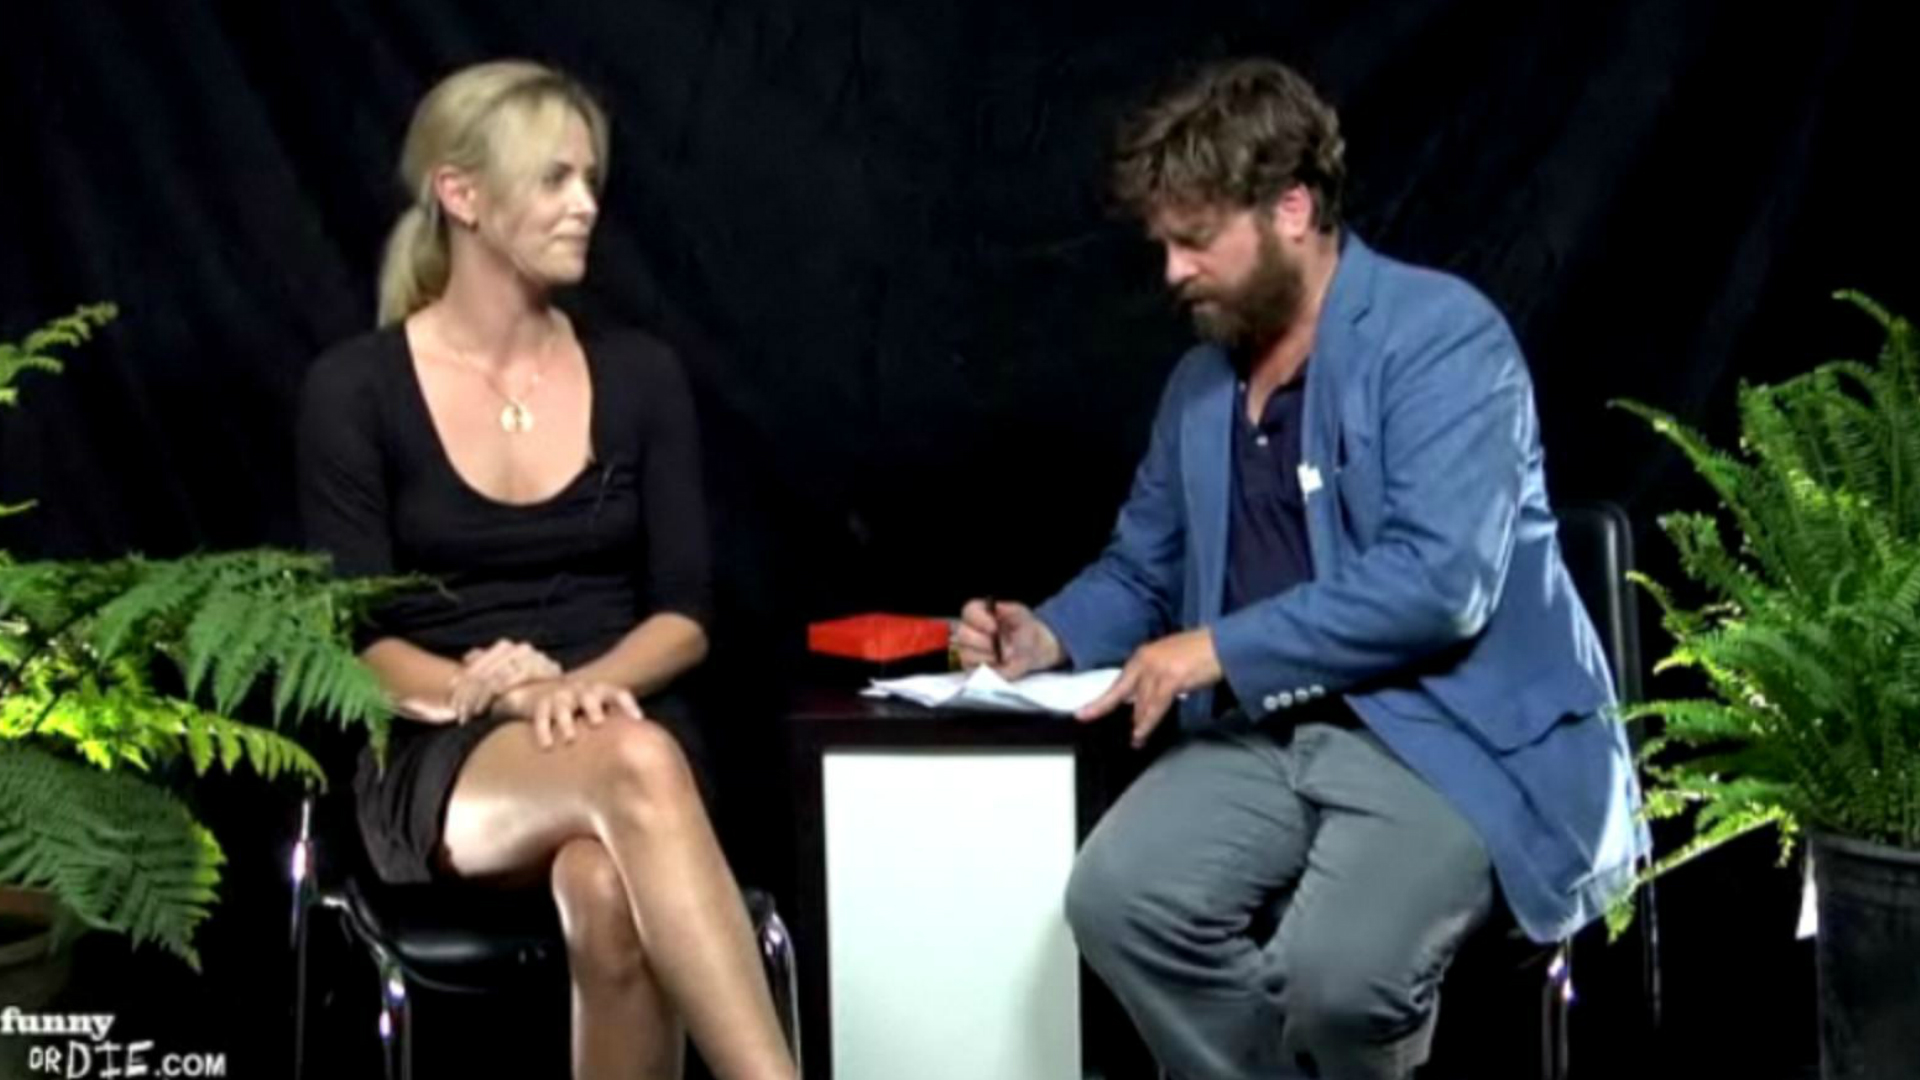 Charlize Theron and Zach Galifianakis in Between Two Ferns